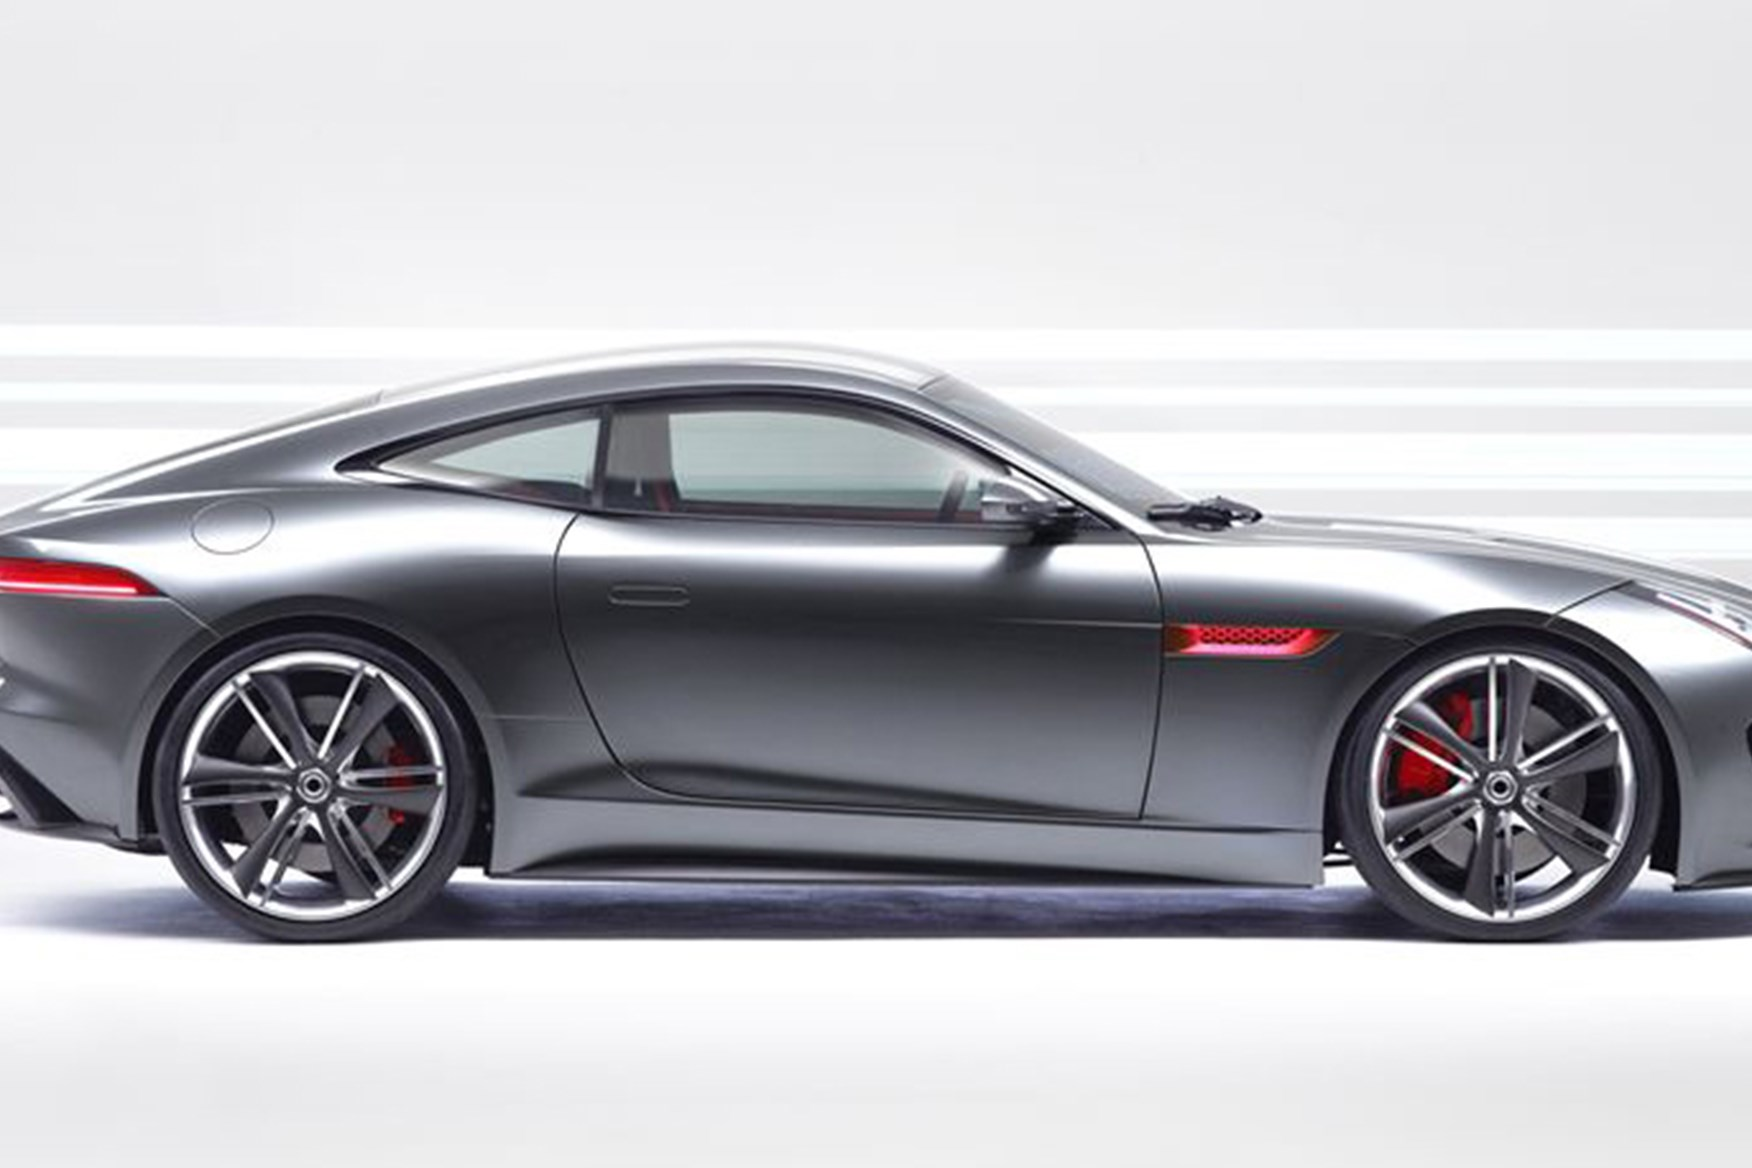 ... The C X16 Style Is Safely Intact On The New Jaguar F Type. Hurrah!